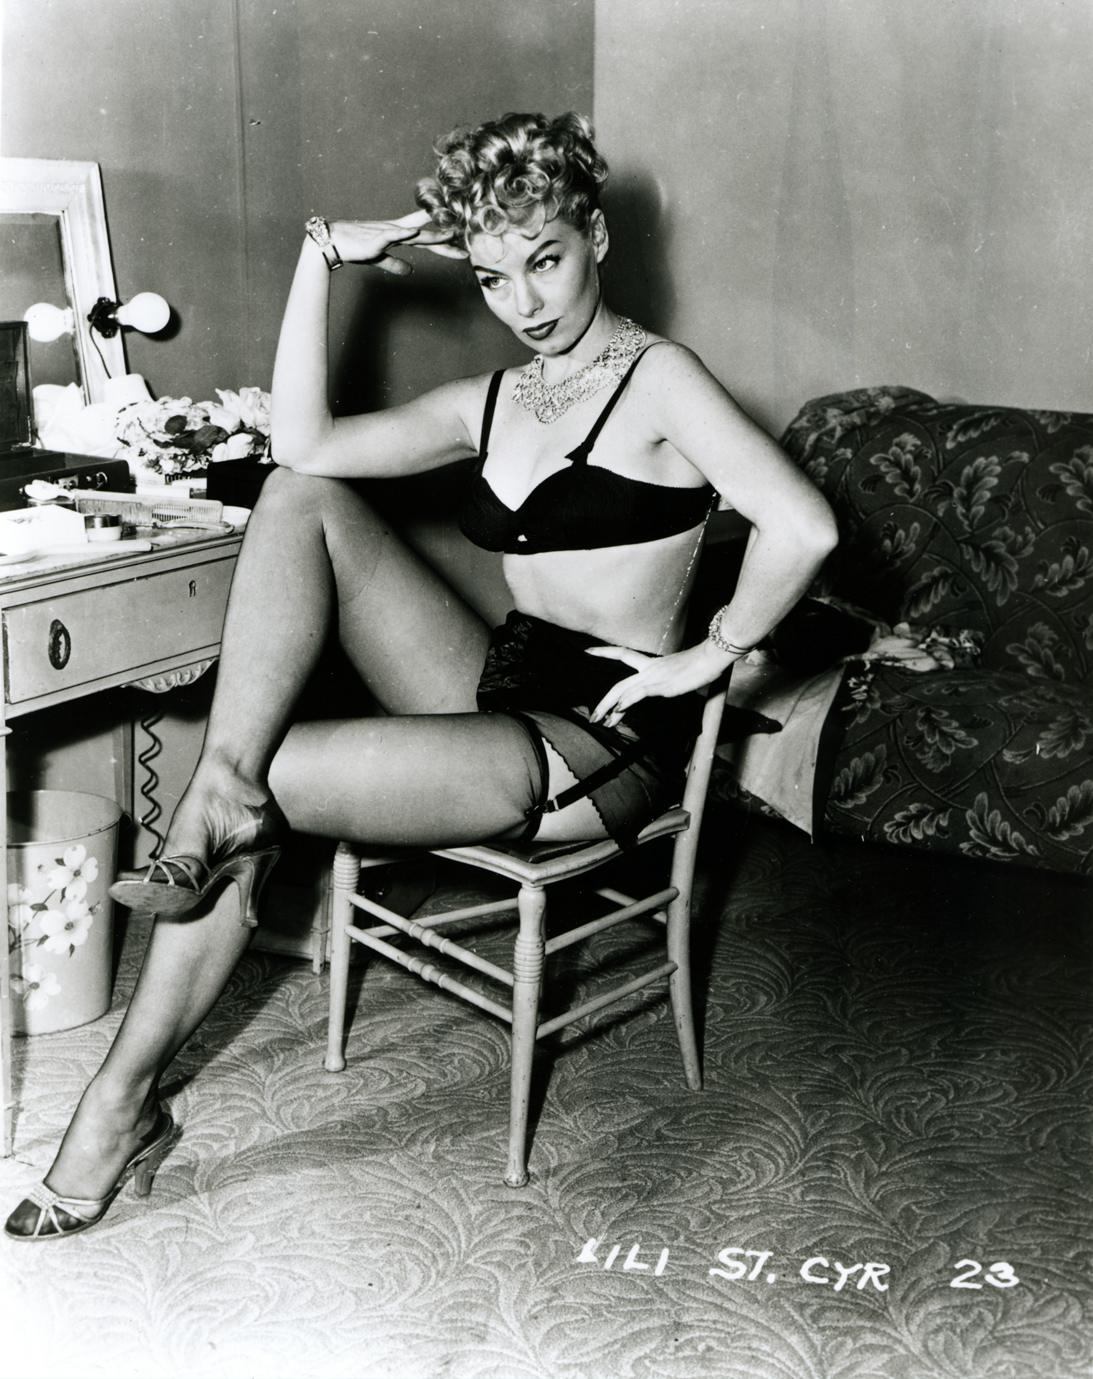 Lili St. Cyr, another old school burlesque icon that I absolutely adore.